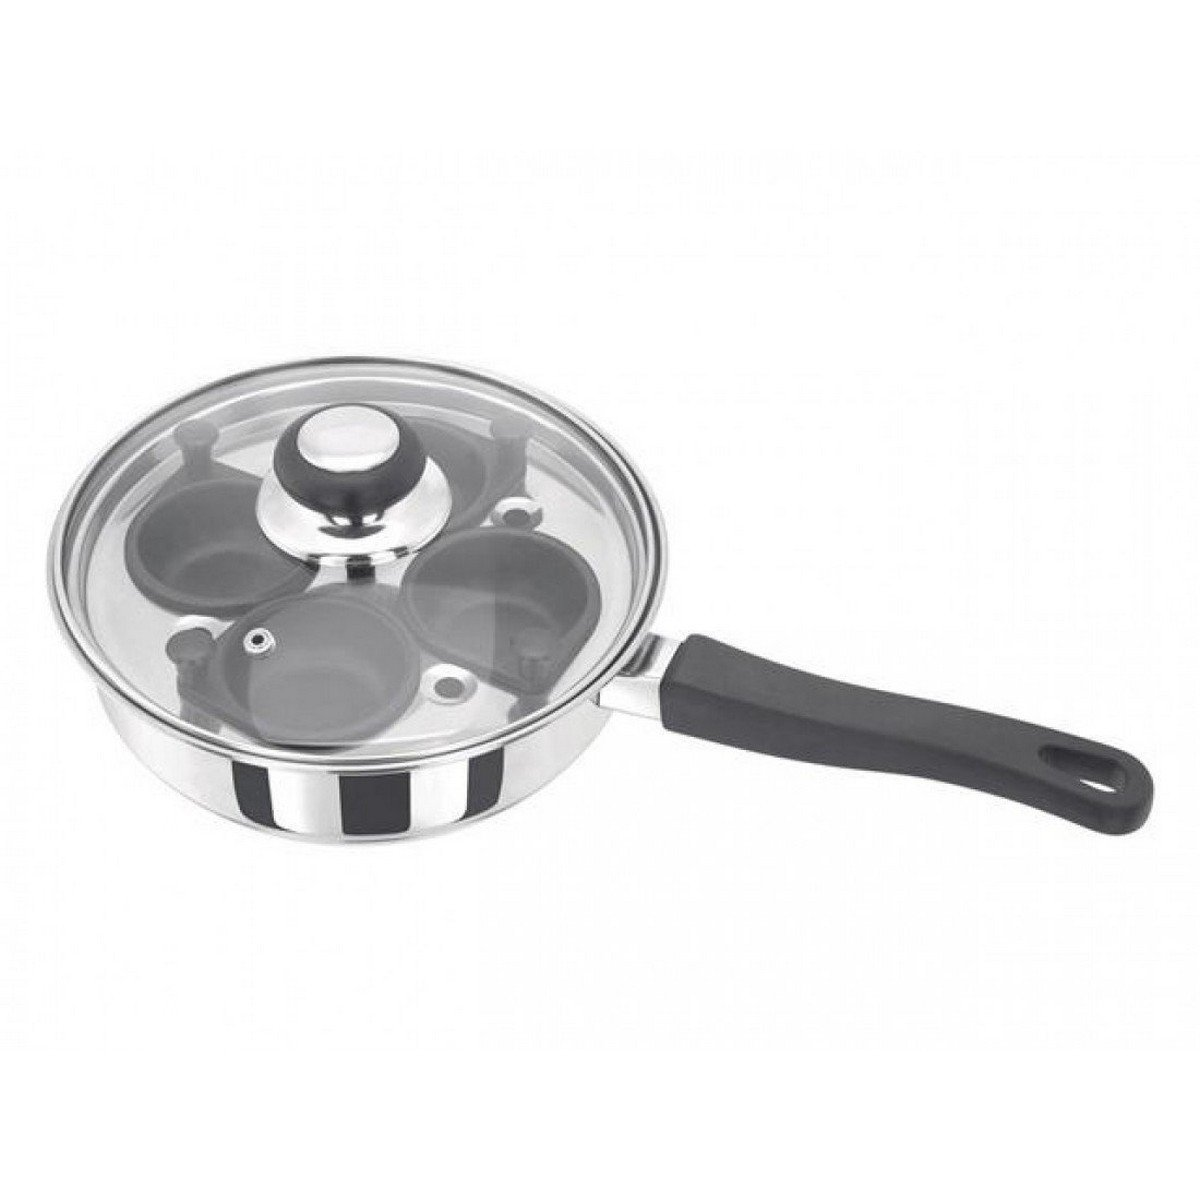 Judge Basics Egg Poacher 4 Hole